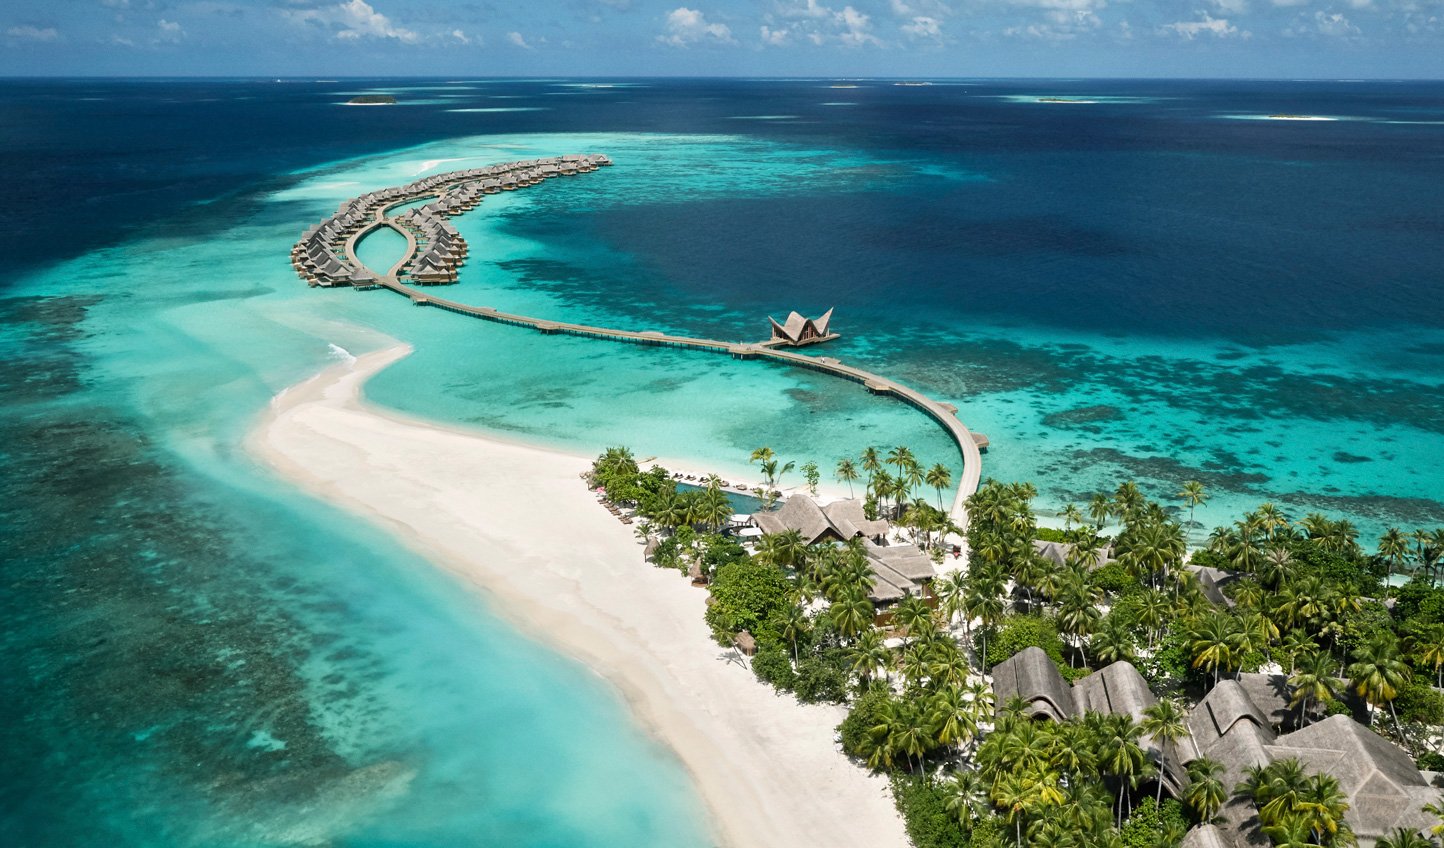 Dive into the vibrant reef surrounding the island of Muravandhoo